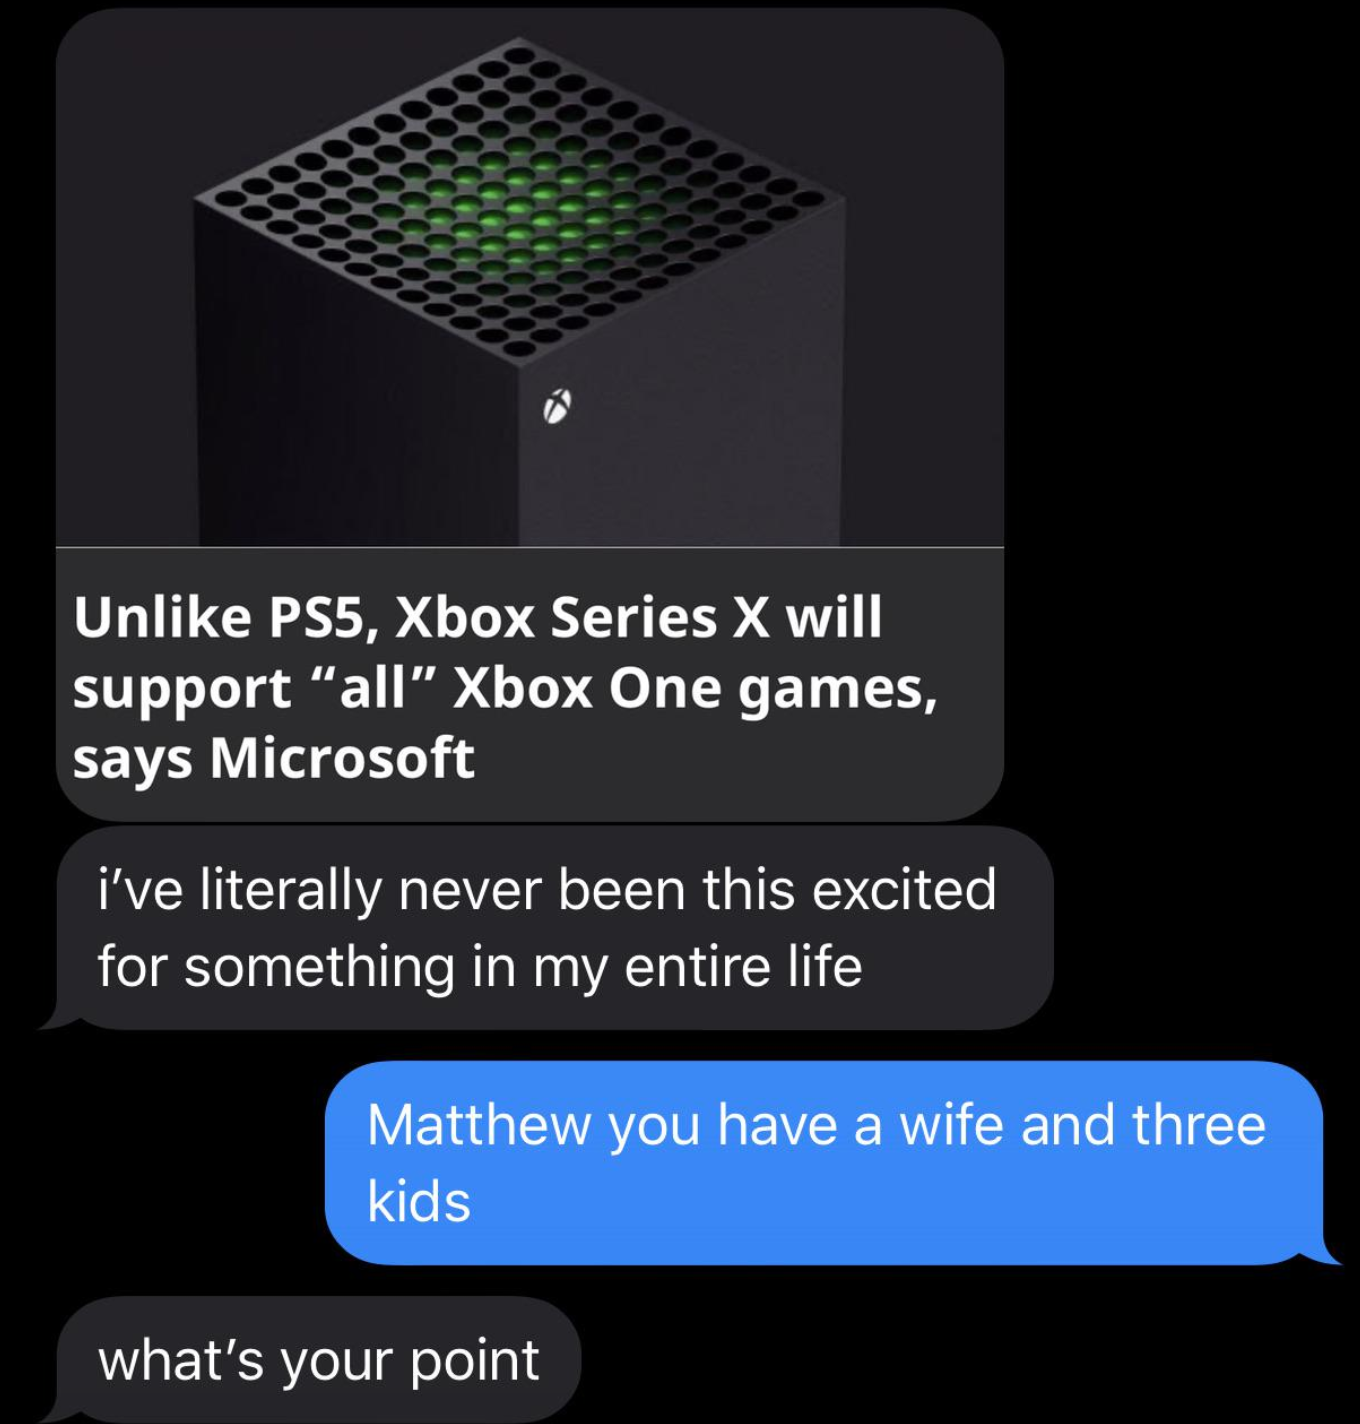 """A link to an article about a new Xbox with a text saying, """"I've literally never been this excited for something in my entire life"""" and a reply saying """"Matthew you have a wife and three kids"""""""